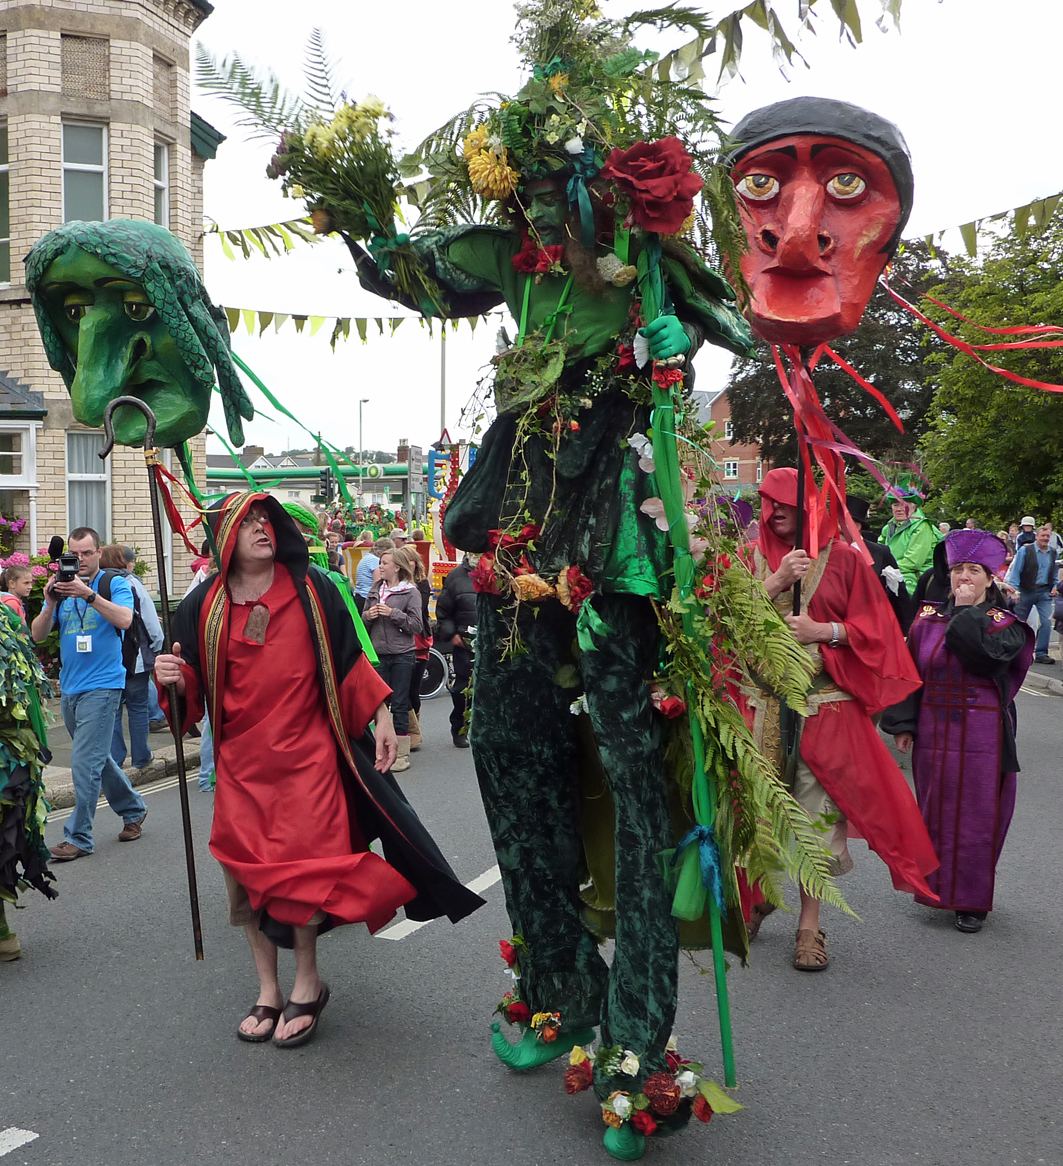 Laurie as the Green Man reaches Pilton with the parade